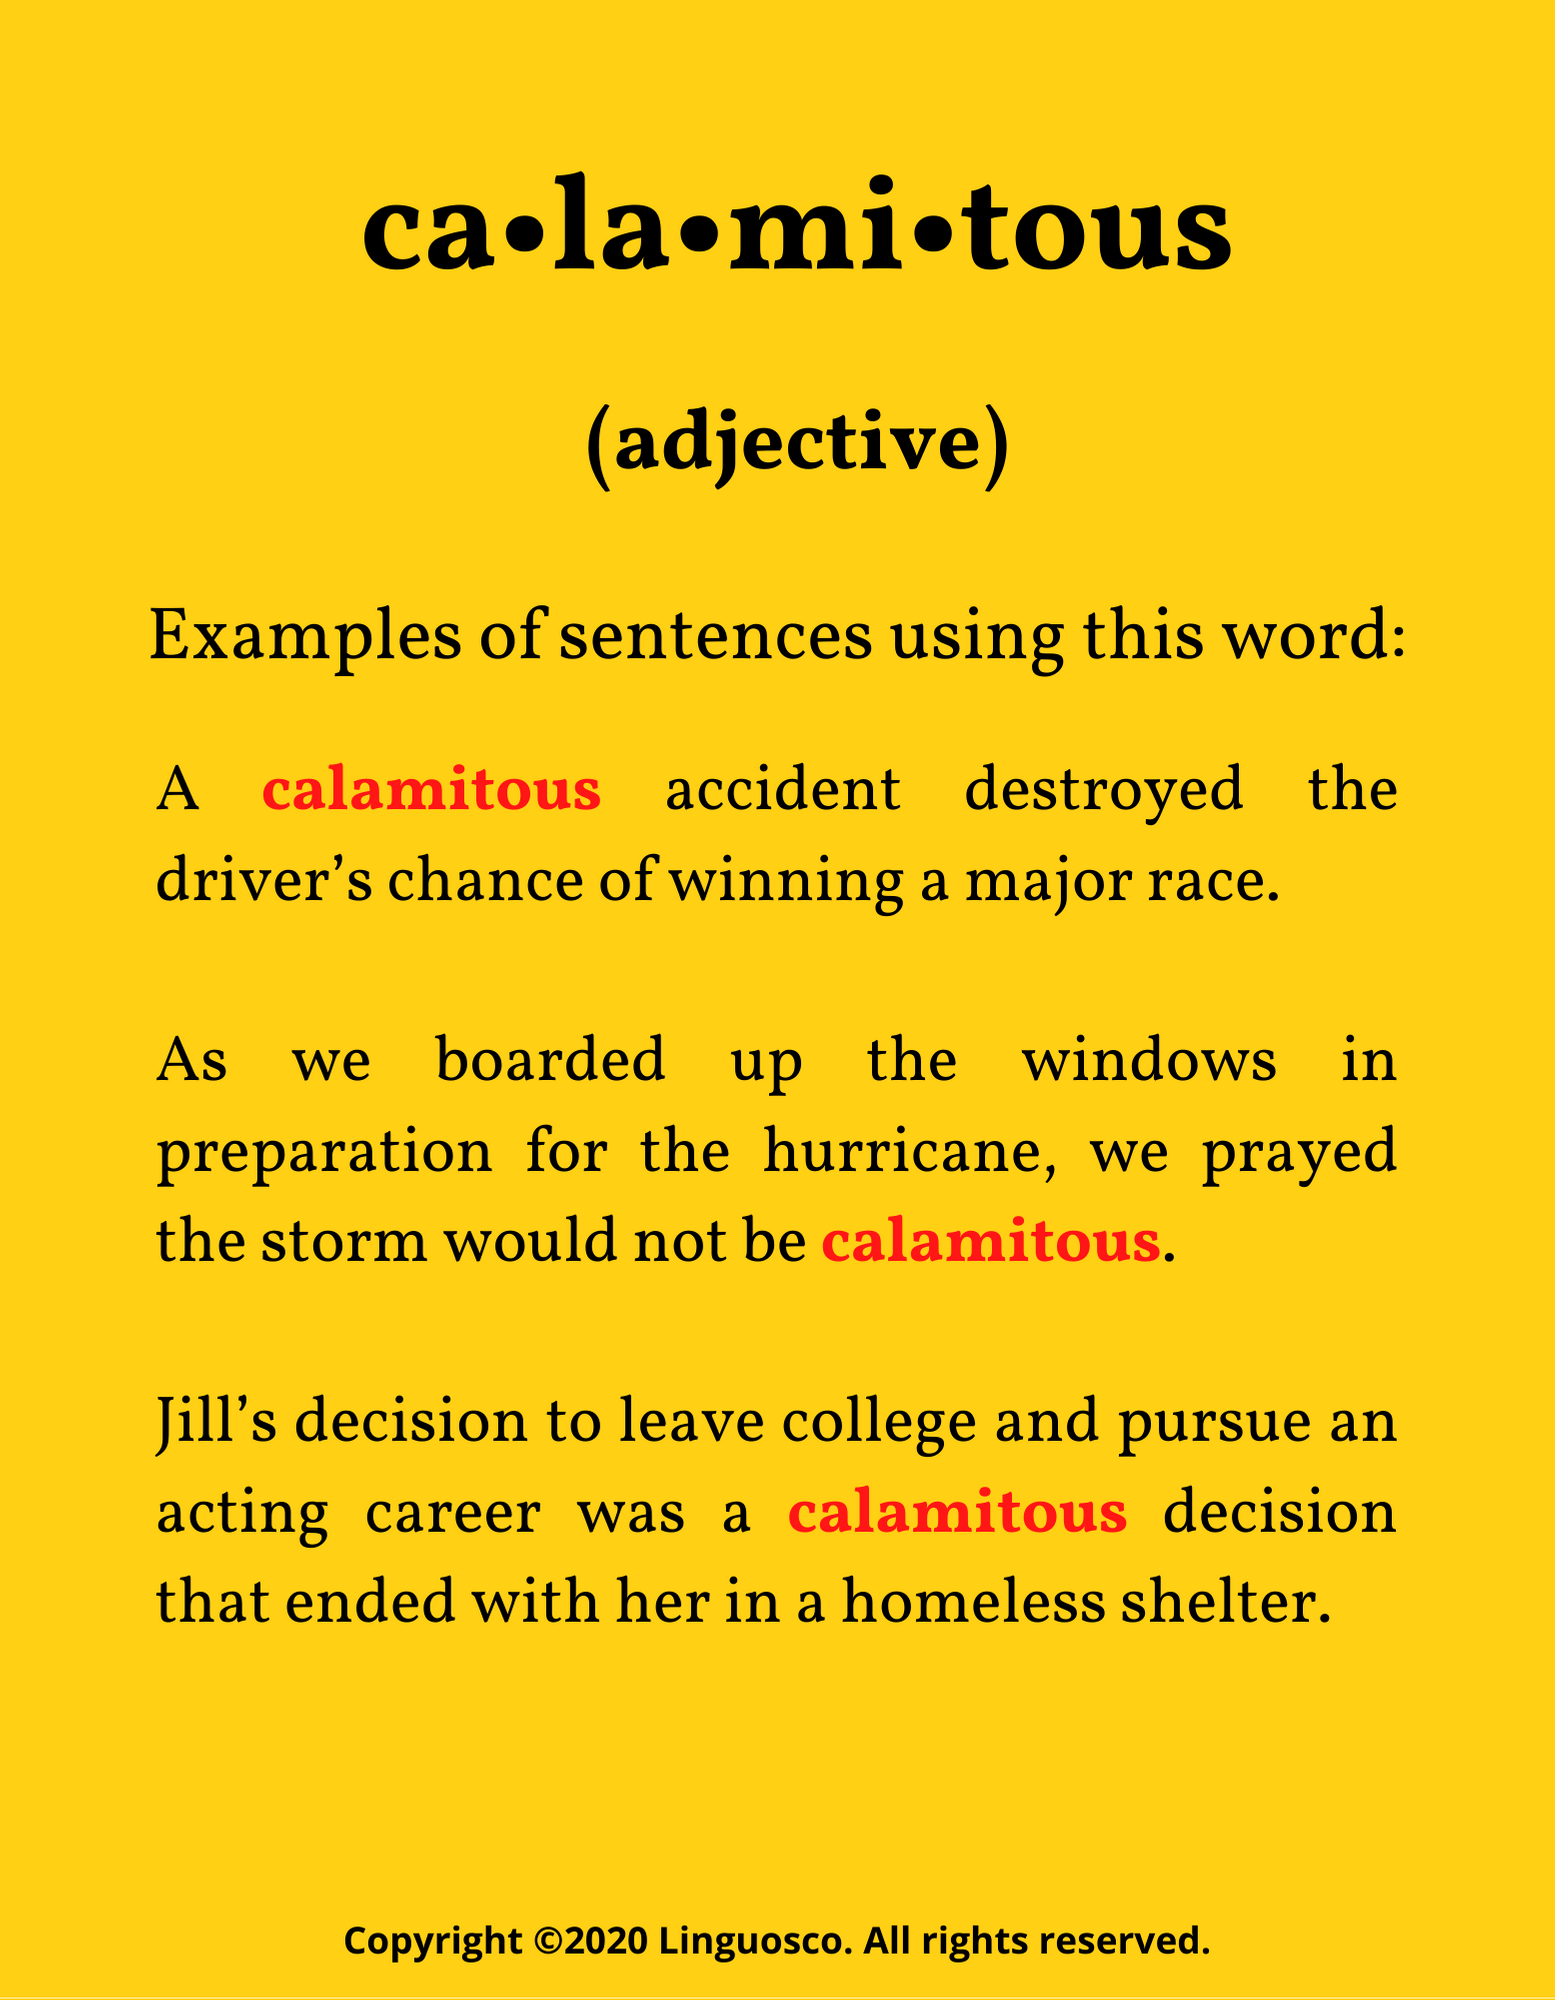 Calamitous - Word of the Week